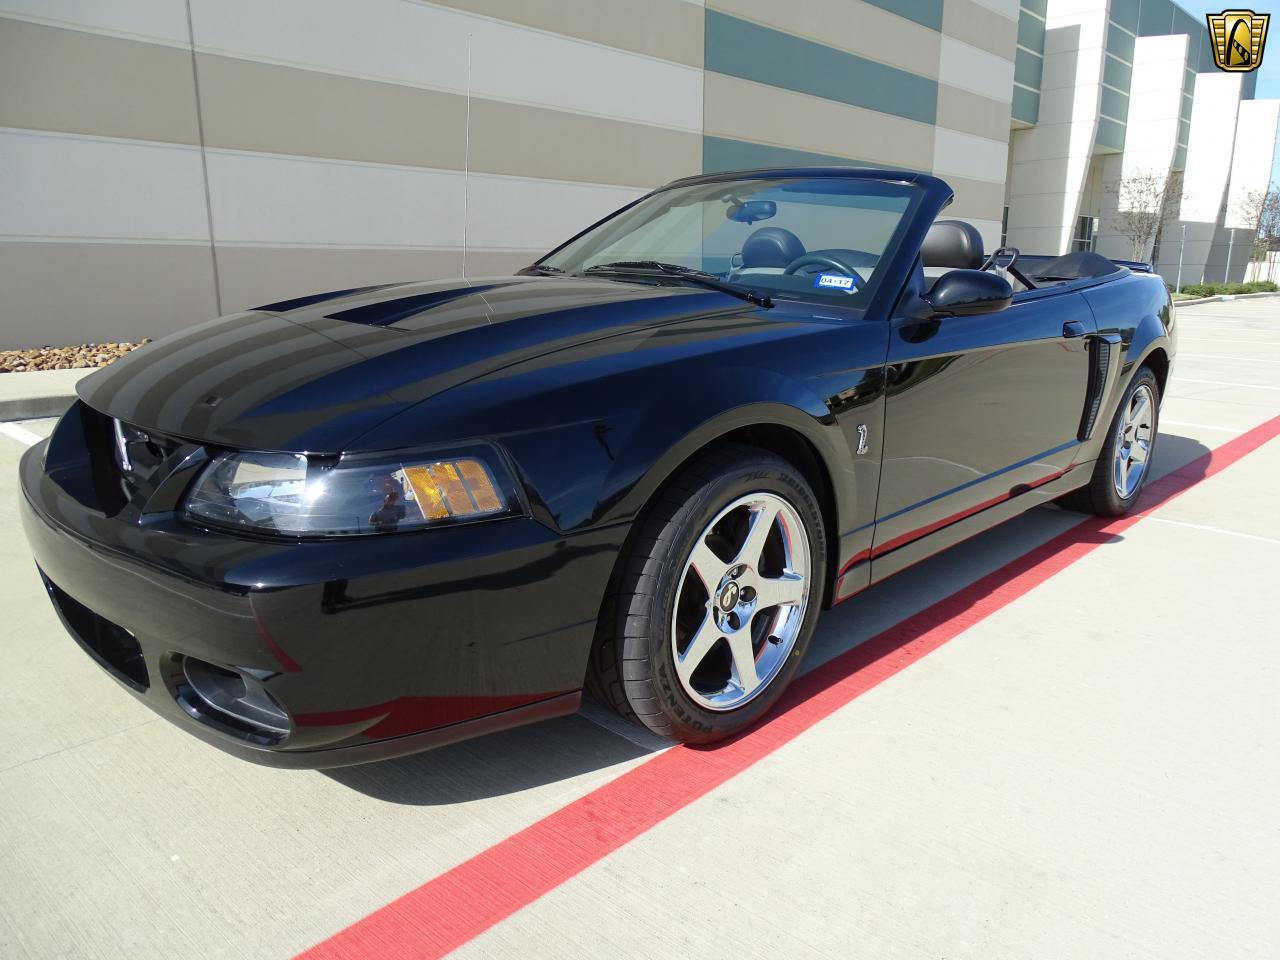 Large Picture of 2003 Ford Mustang located in Houston Texas - $27,995.00 Offered by Gateway Classic Cars - Houston - KES2